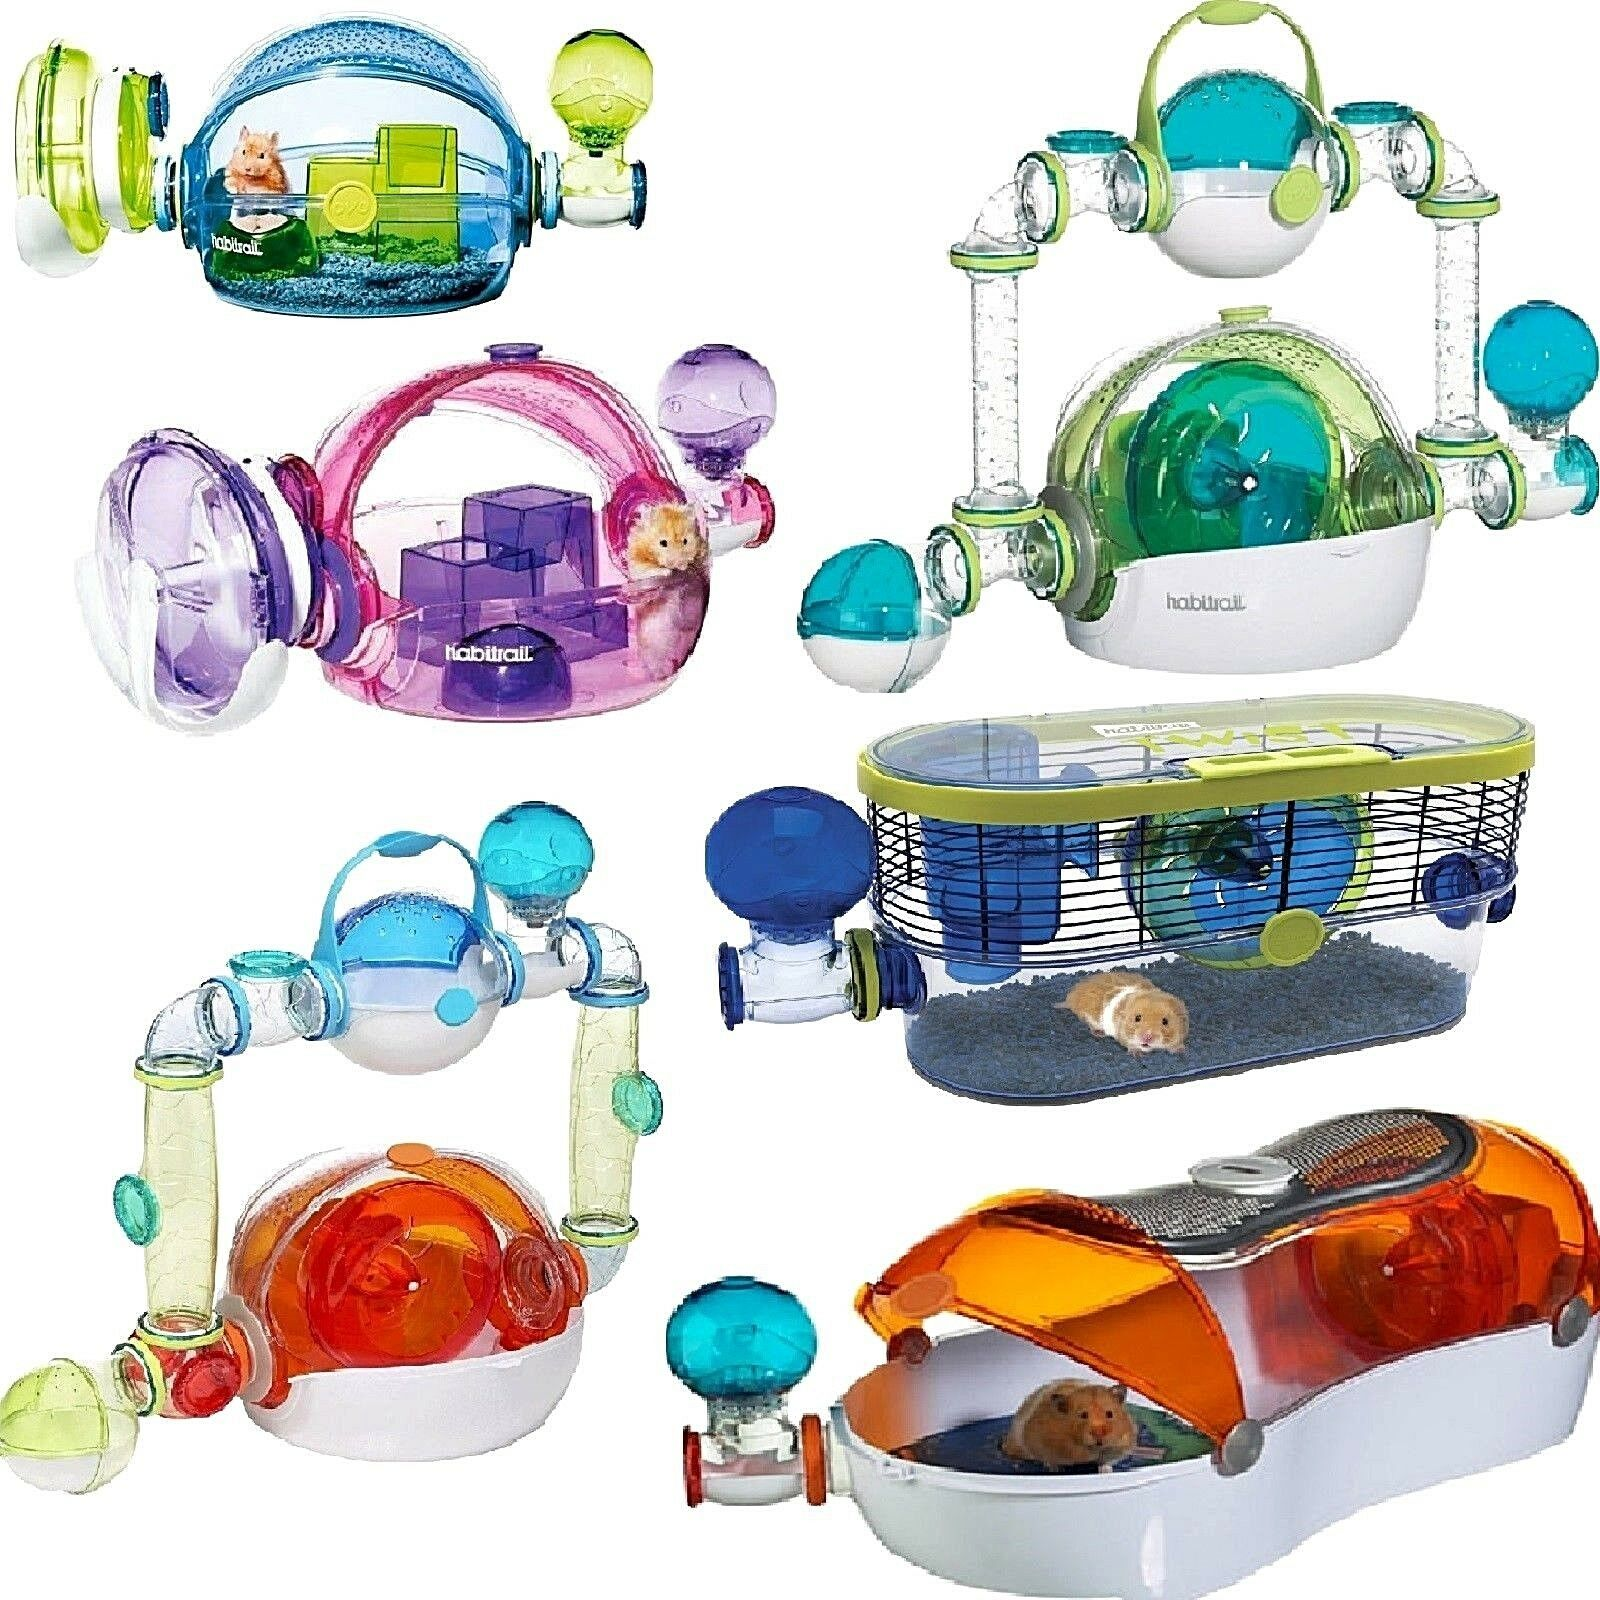 HABITRAIL - Pet OVO Hamster Habitat Edition Animal Home ...